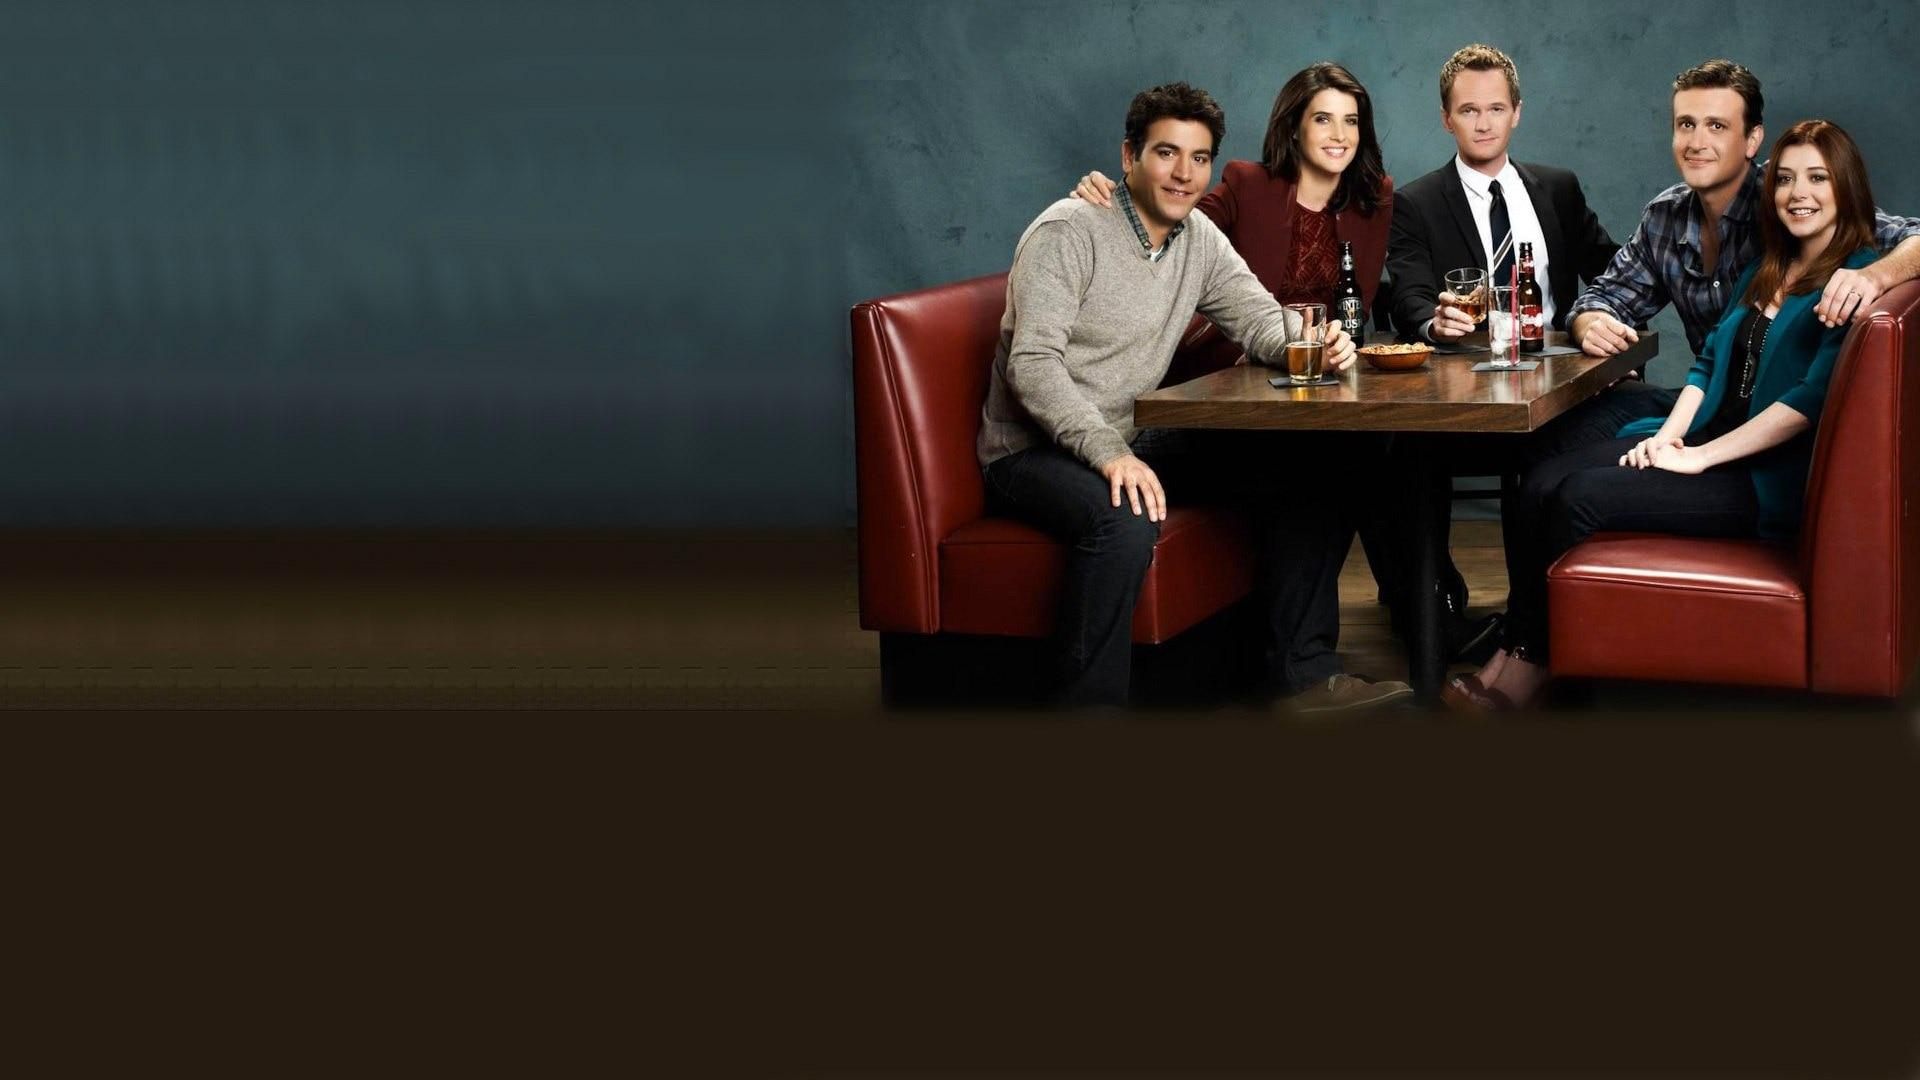 Comedy Central How I Met Your Mother